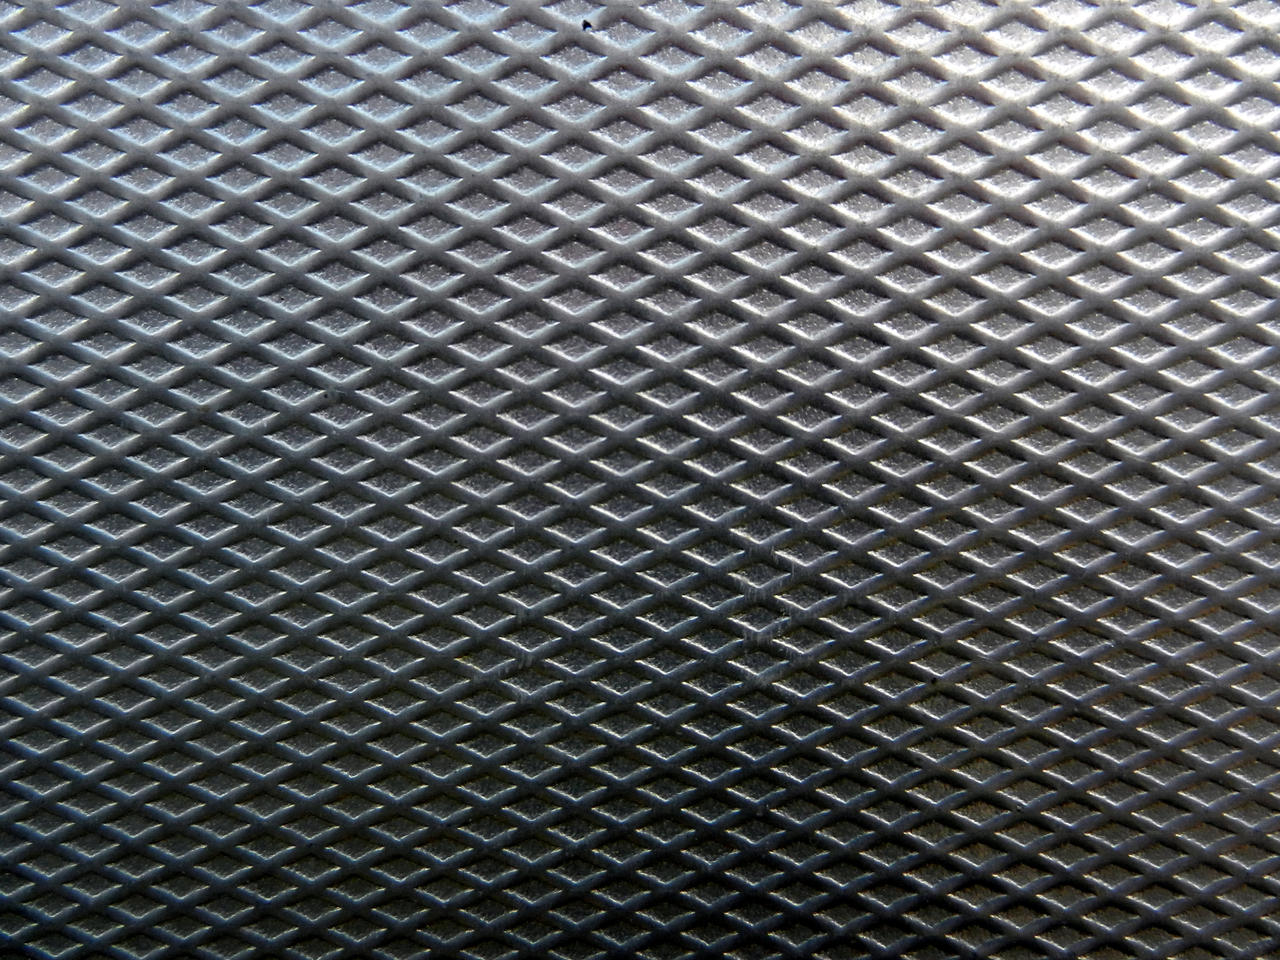 Metal Panel Texture : Metal panel texture by rollatroll on deviantart